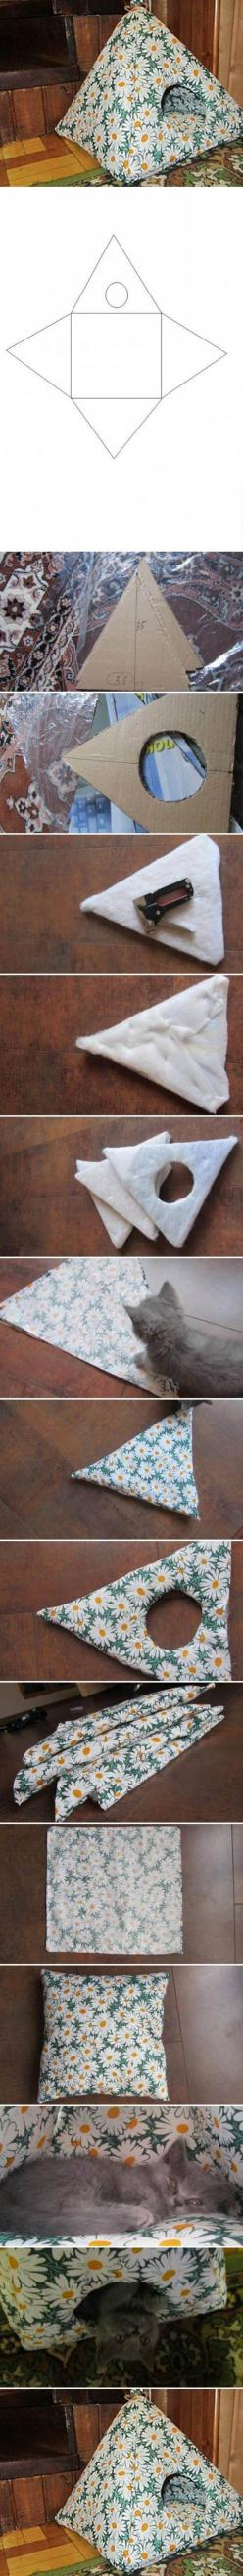 Easy DIY Cat Tent: Cats, Diy House, Pet, Cat House, Diy Cat, Cat Tent